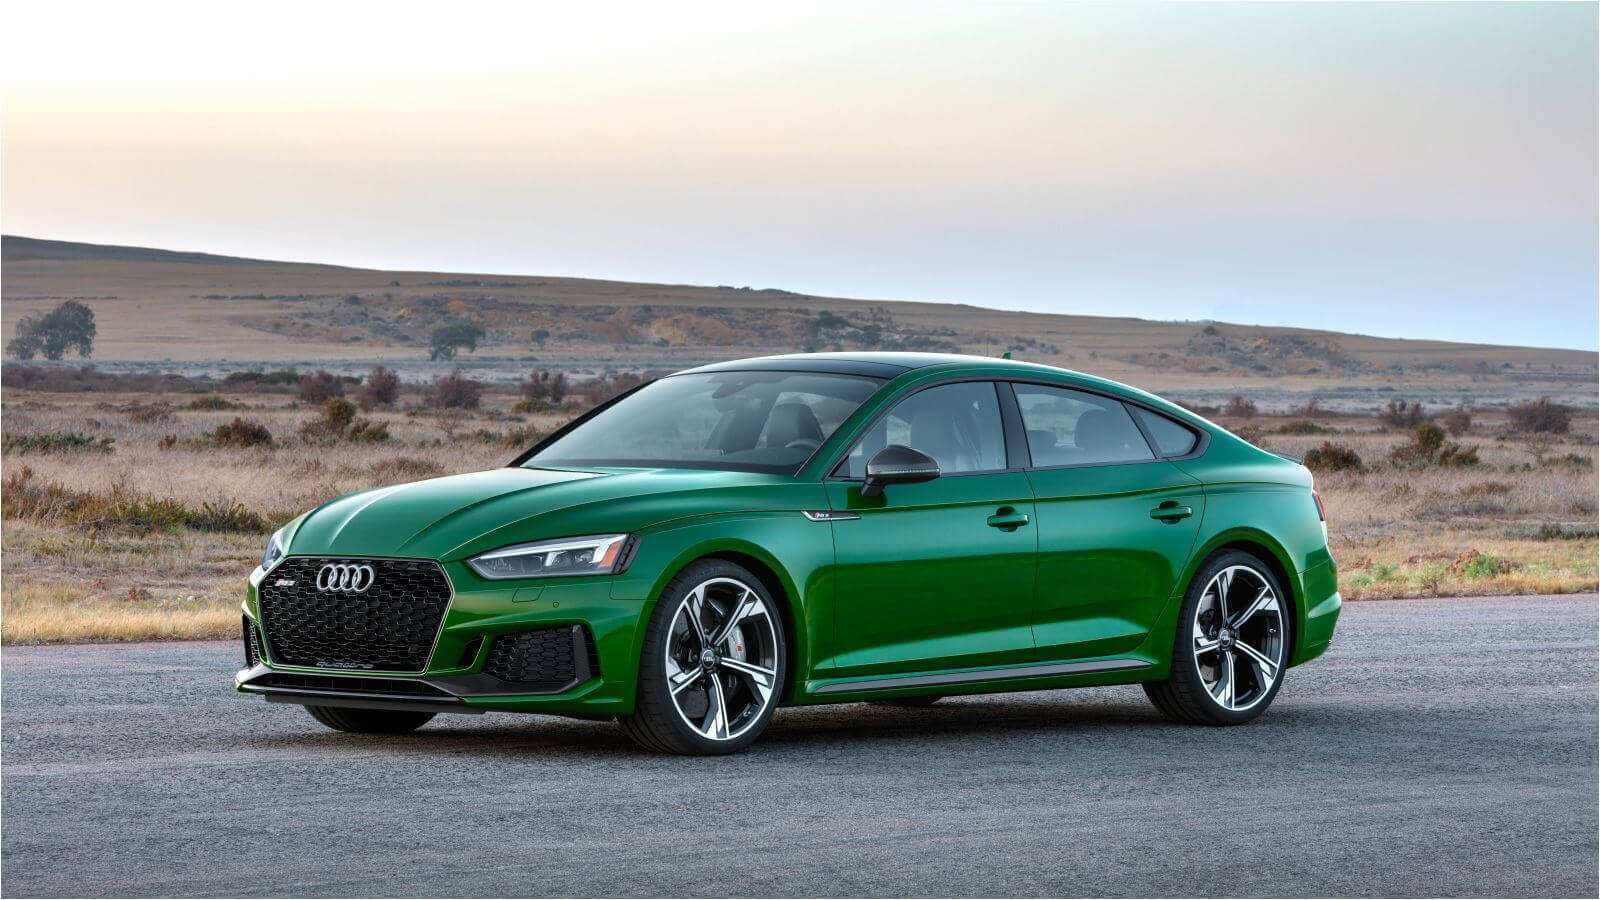 70 All New 2020 Audi Rs5 Photos for 2020 Audi Rs5